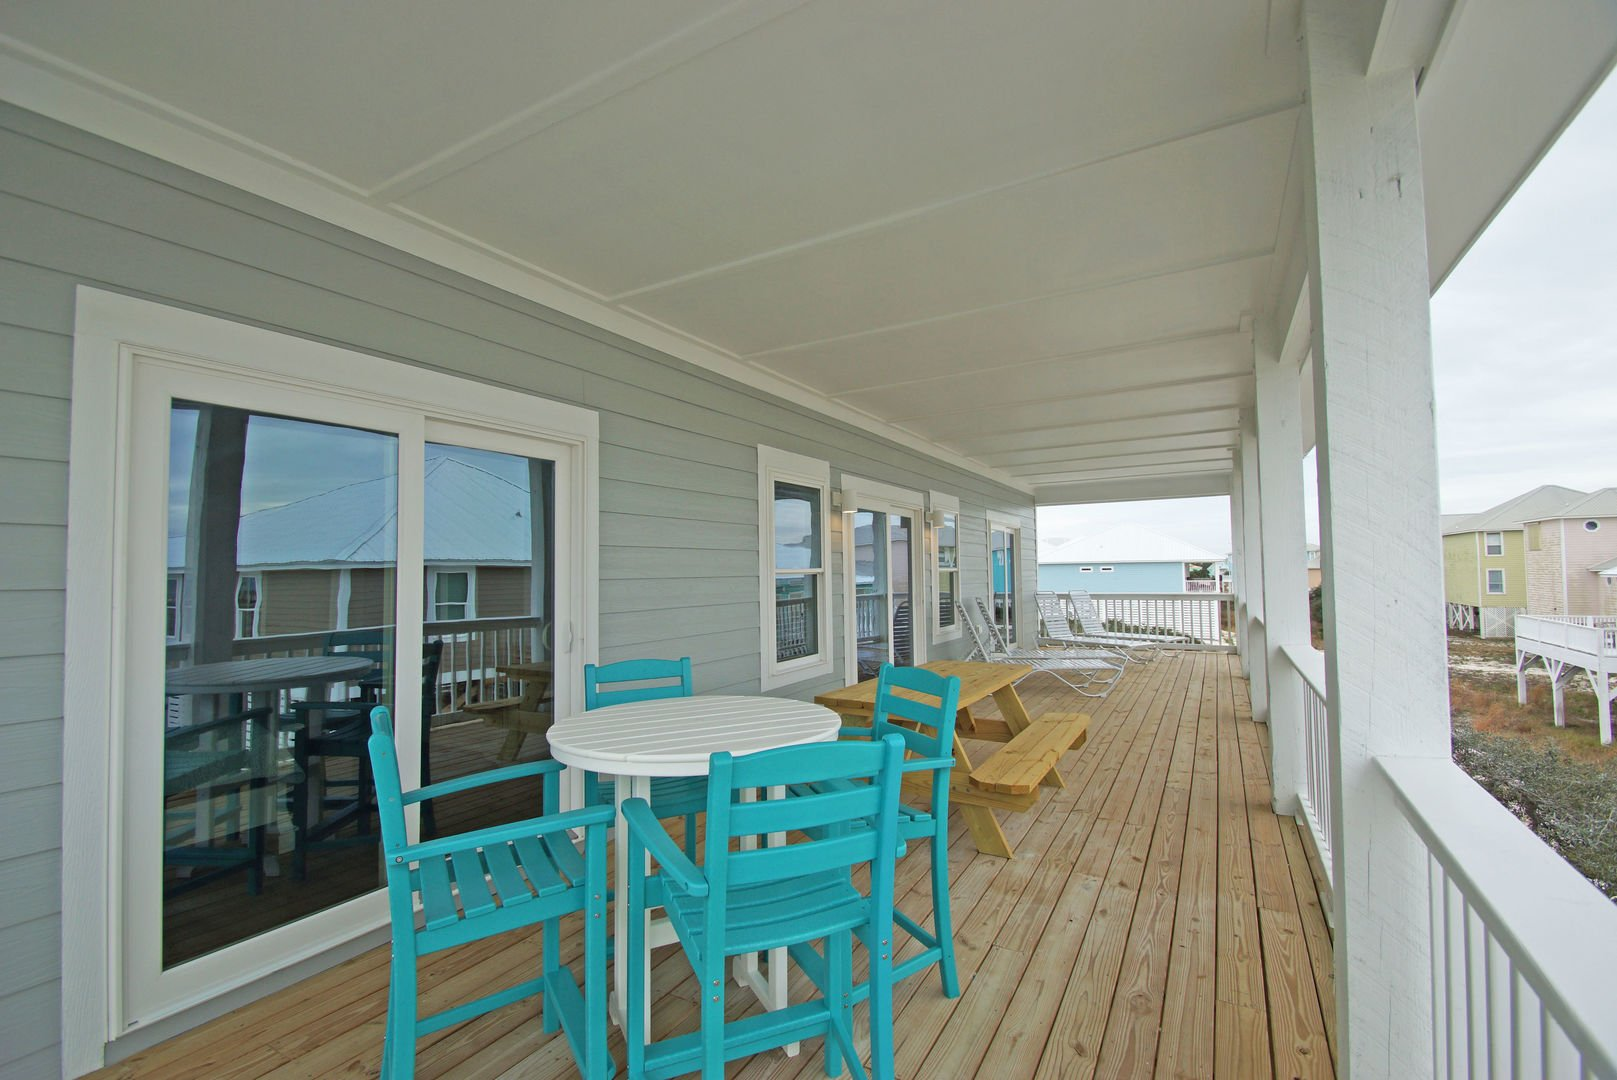 Additional balcony area to catch the sunrise with seating and tables.